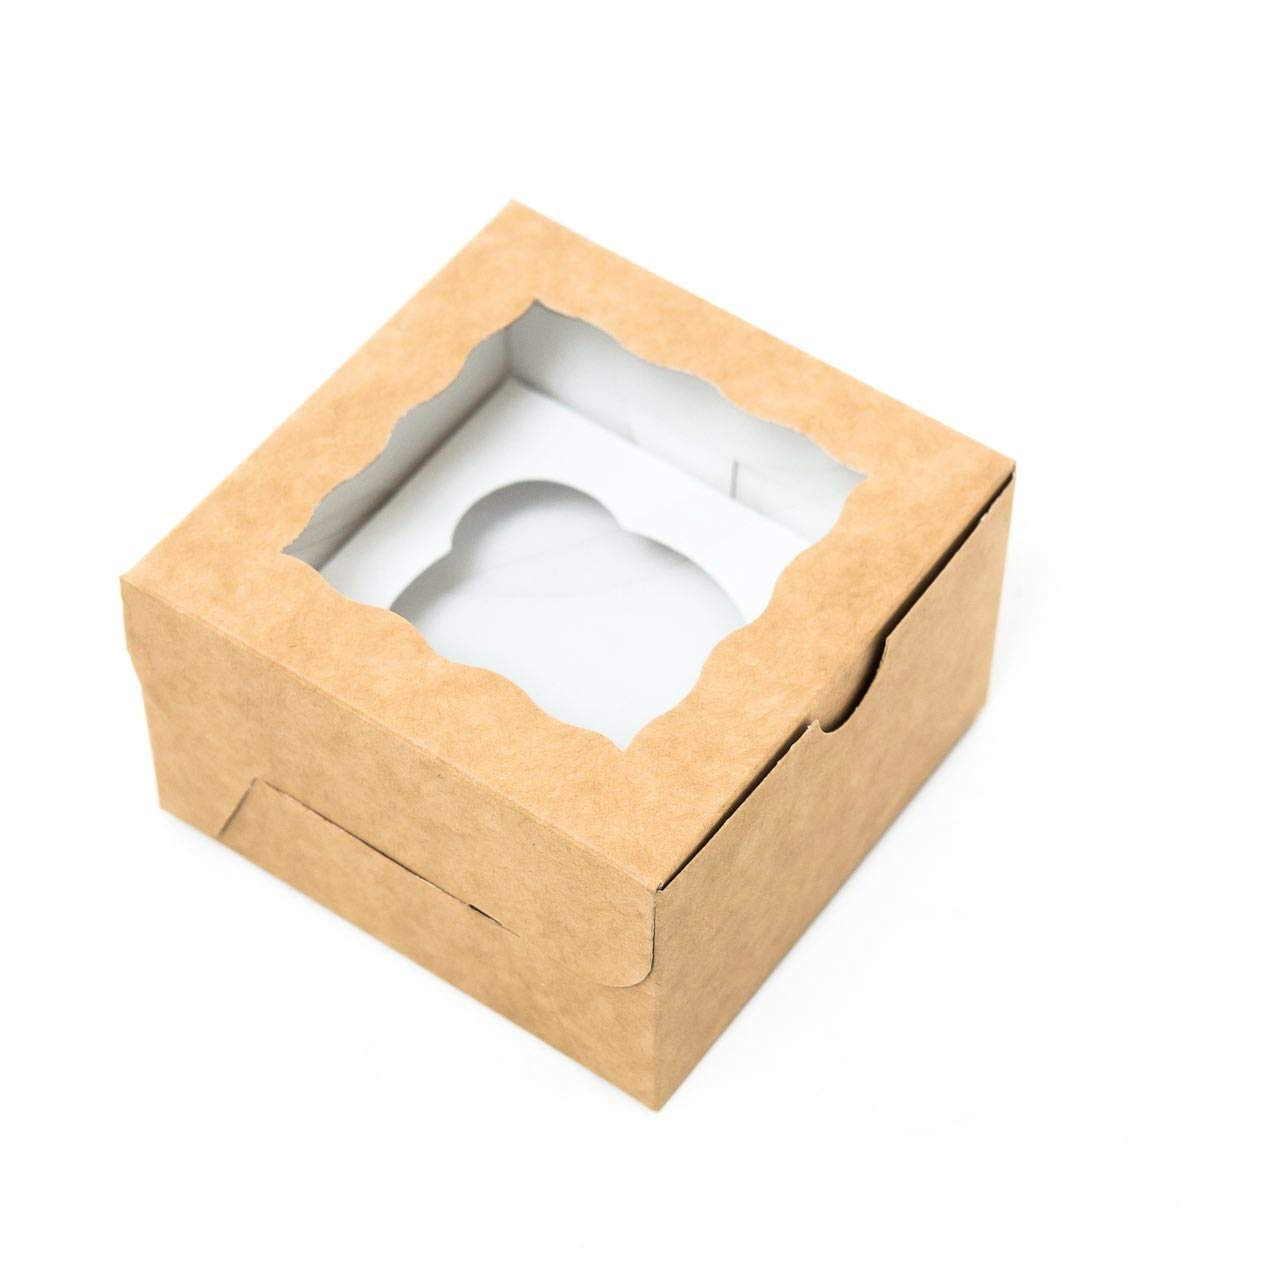 Individual Cupcake Boxes - Kraft Paper Cupcake Containers with Window 4x4x2.5 Inch - Single Muffin Box - Perfect for Mini Standard Jumbo Cupcakes Bakery Pastry Sweets - 20 Pack